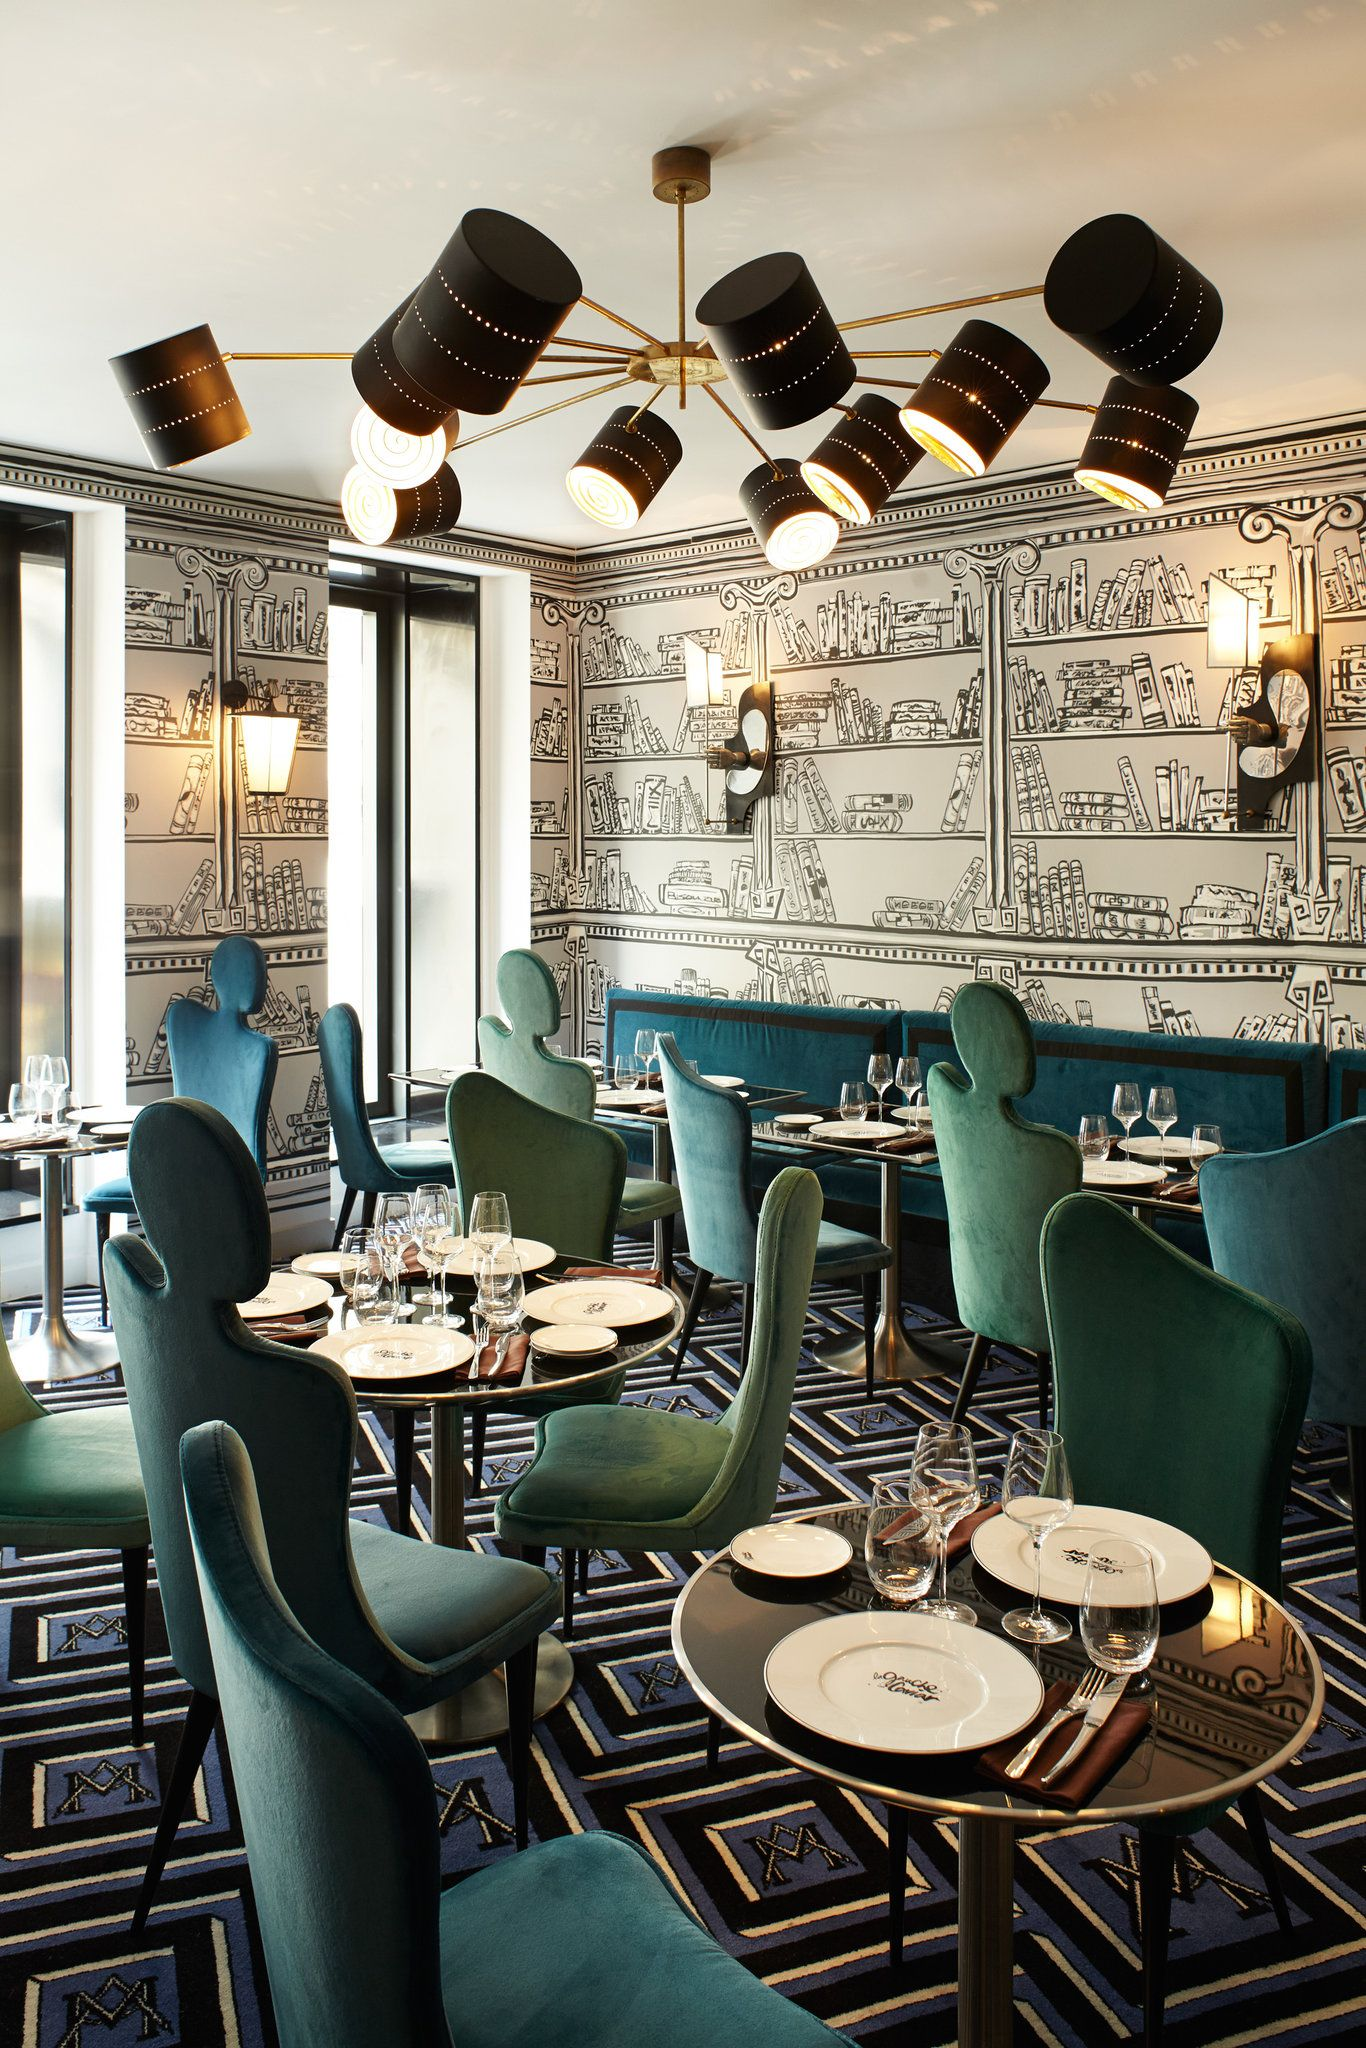 The restaurant le gauche cavier at pariss hotel montana has a russian inspired menu and chairs by maison darré photo alexandre bailhache